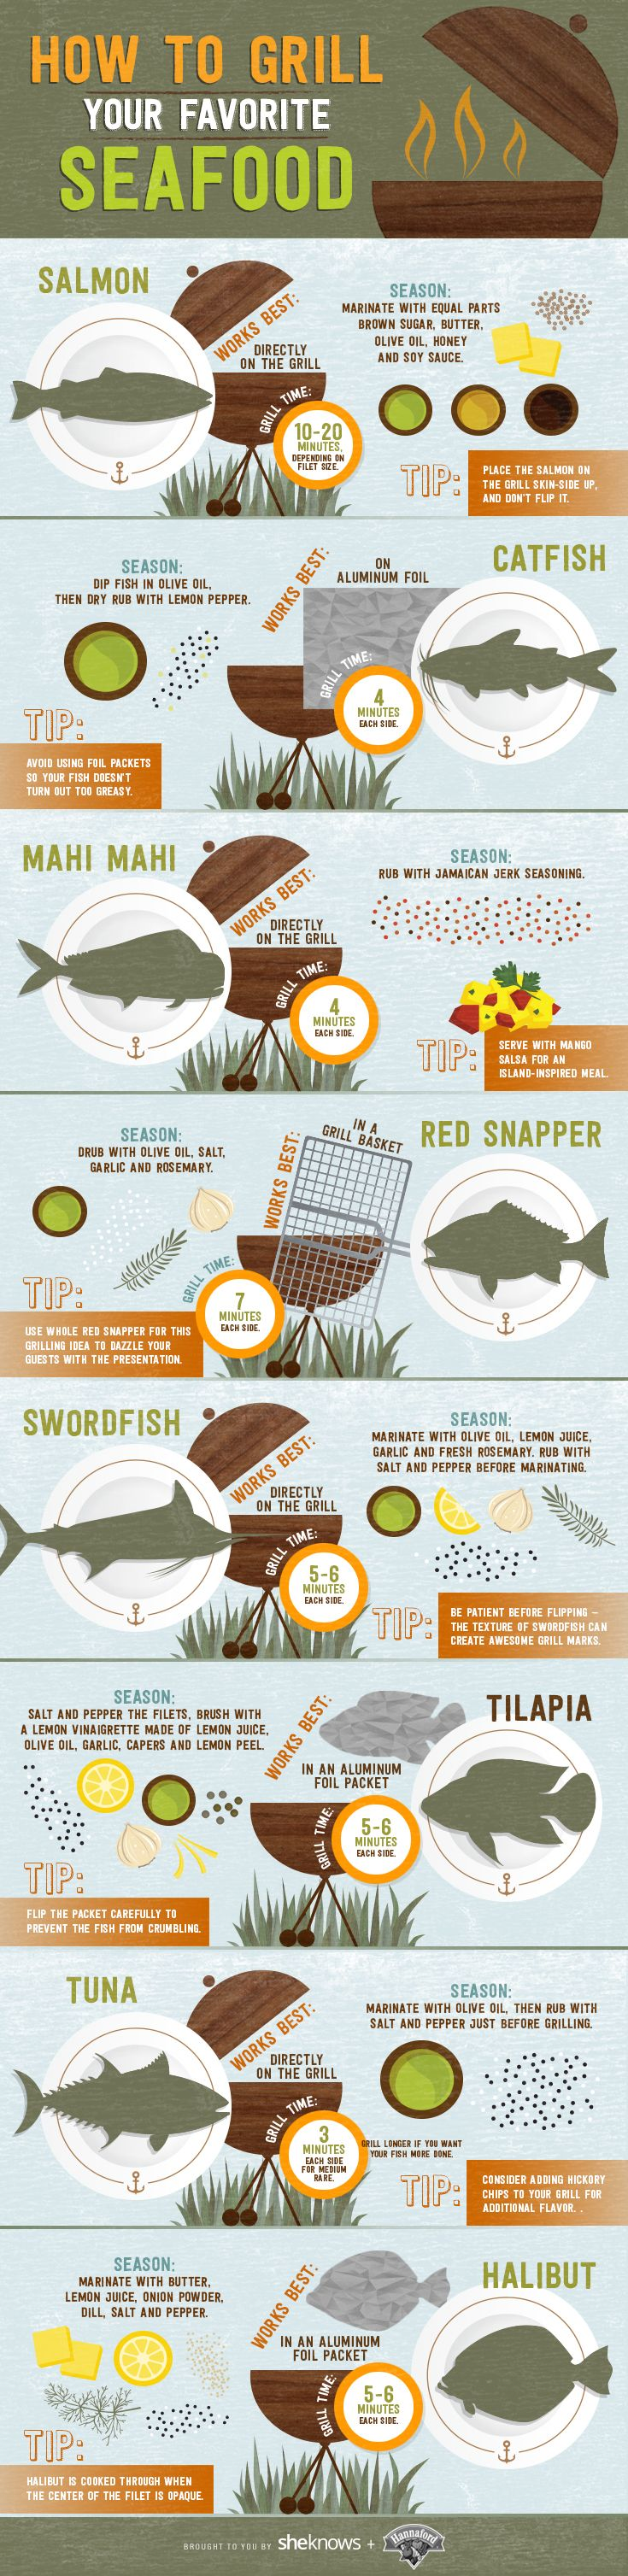 How to grill your favorite types of fish (INFOGRAPHIC)